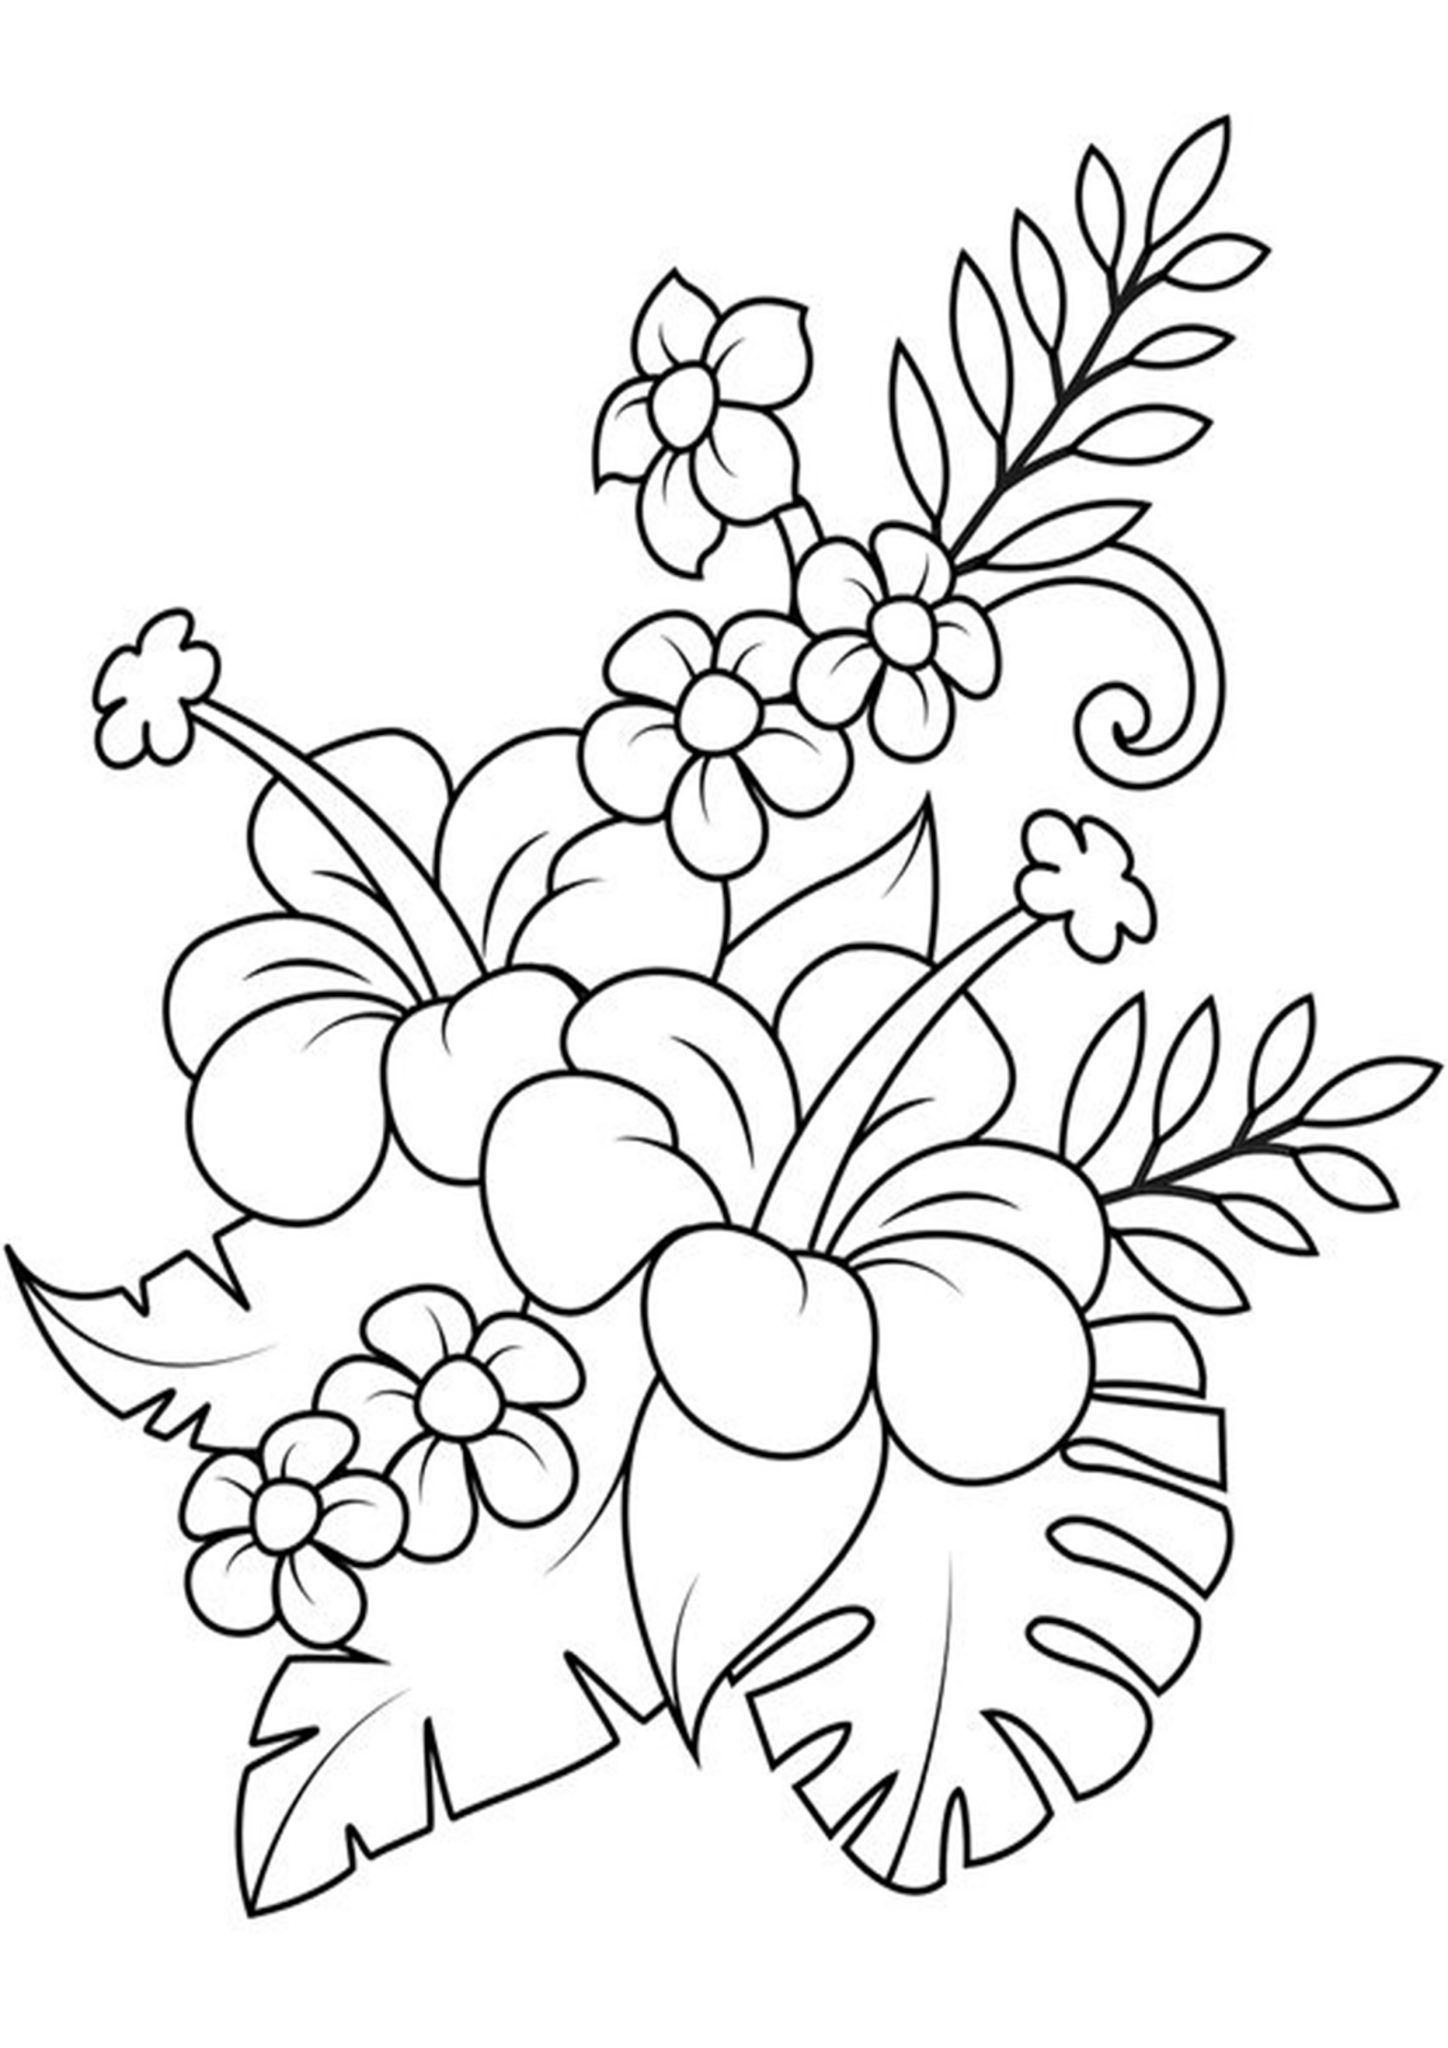 Free Easy To Print Flower Coloring Pages Flower Coloring Pages Colouring Pages Leaf Coloring Page